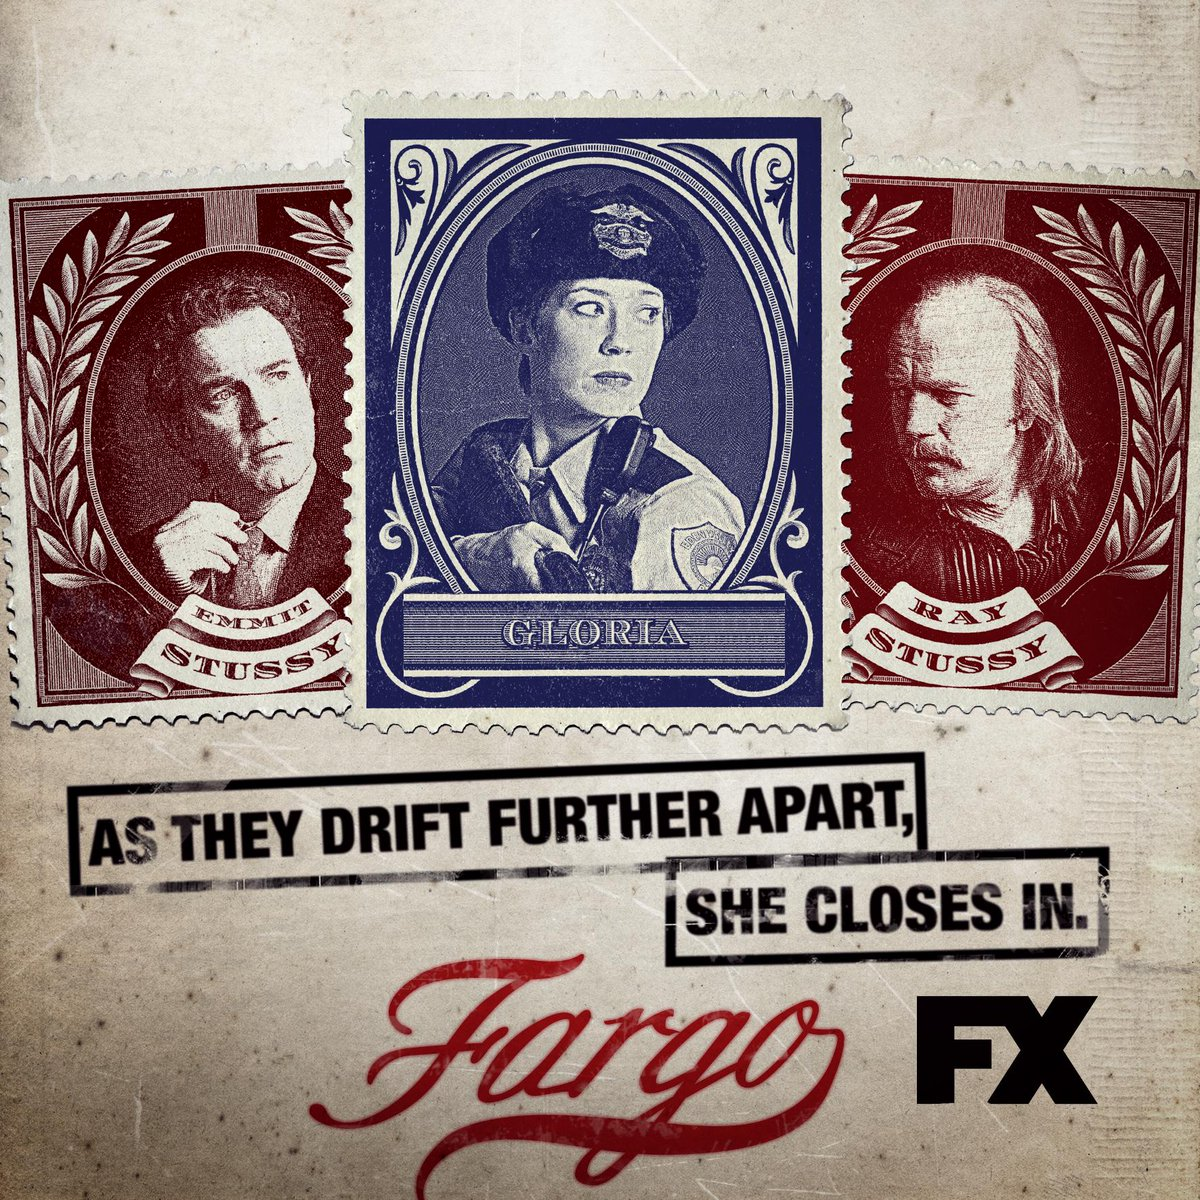 The law divides the Stussy brothers. #Fargo